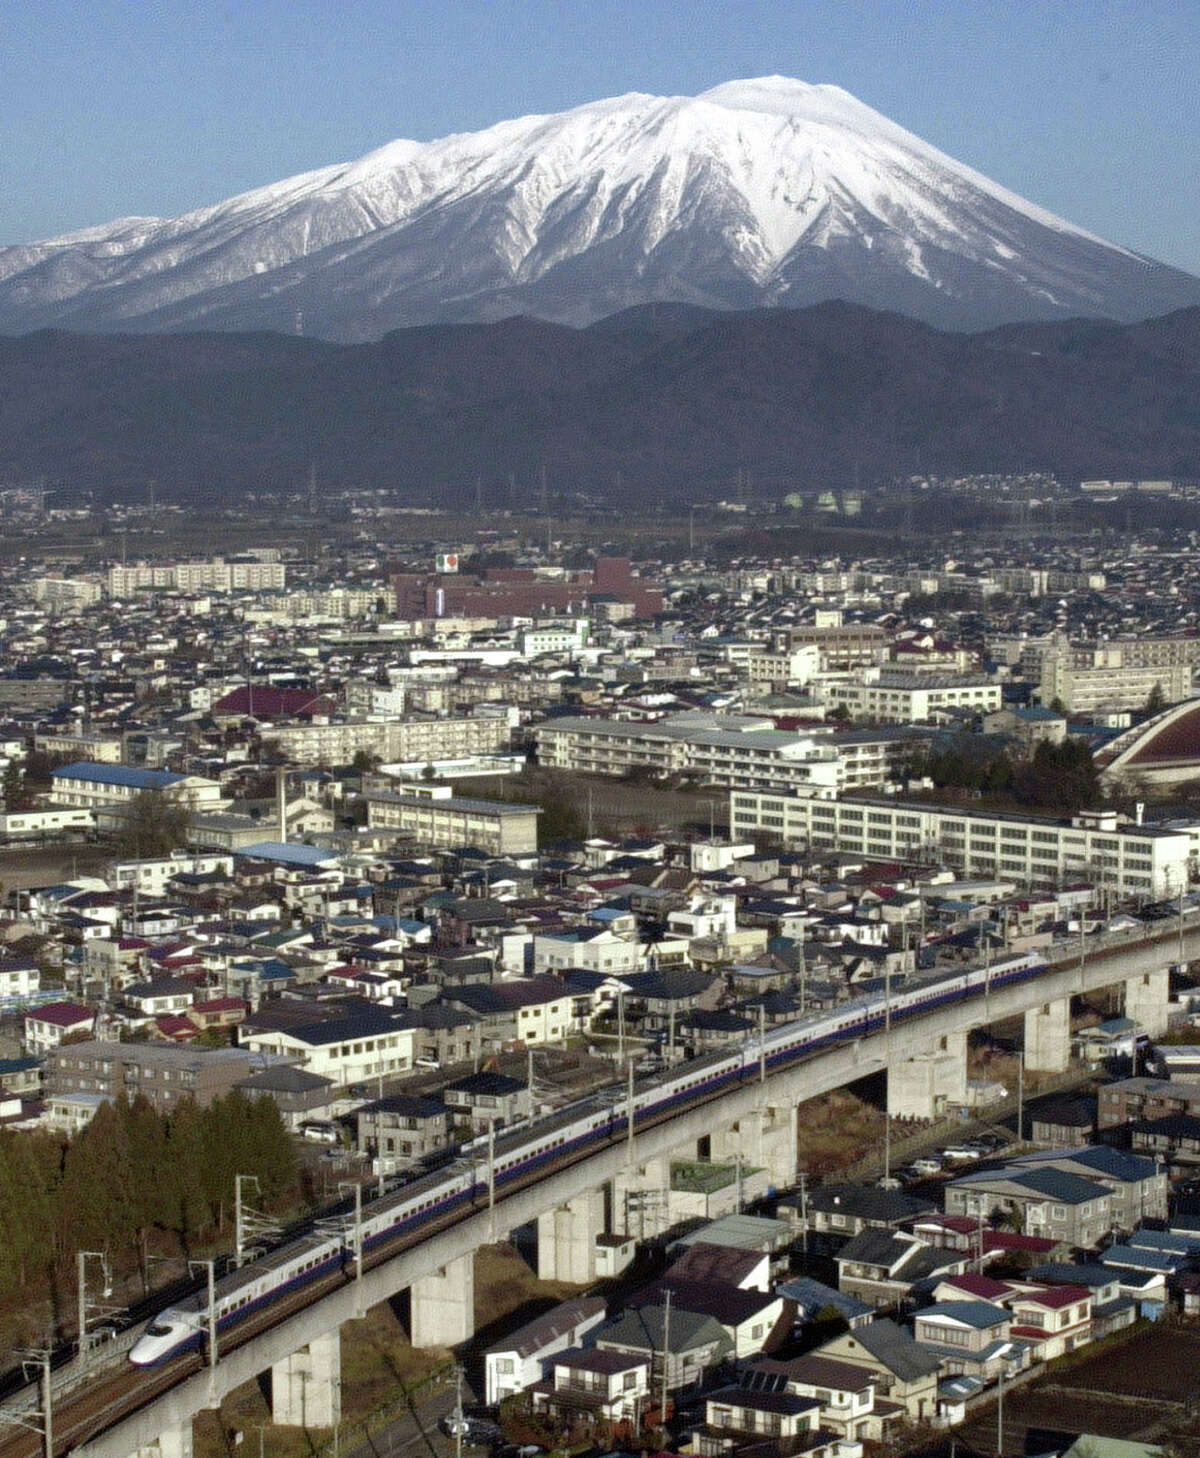 With a backdrop of the snow-capped Mount Iwate, the first train, the Hayate, of the new bullet-train service travels for Tokyo after leaving Hachinohe station in northern Japan on Dec. 1, 2002.